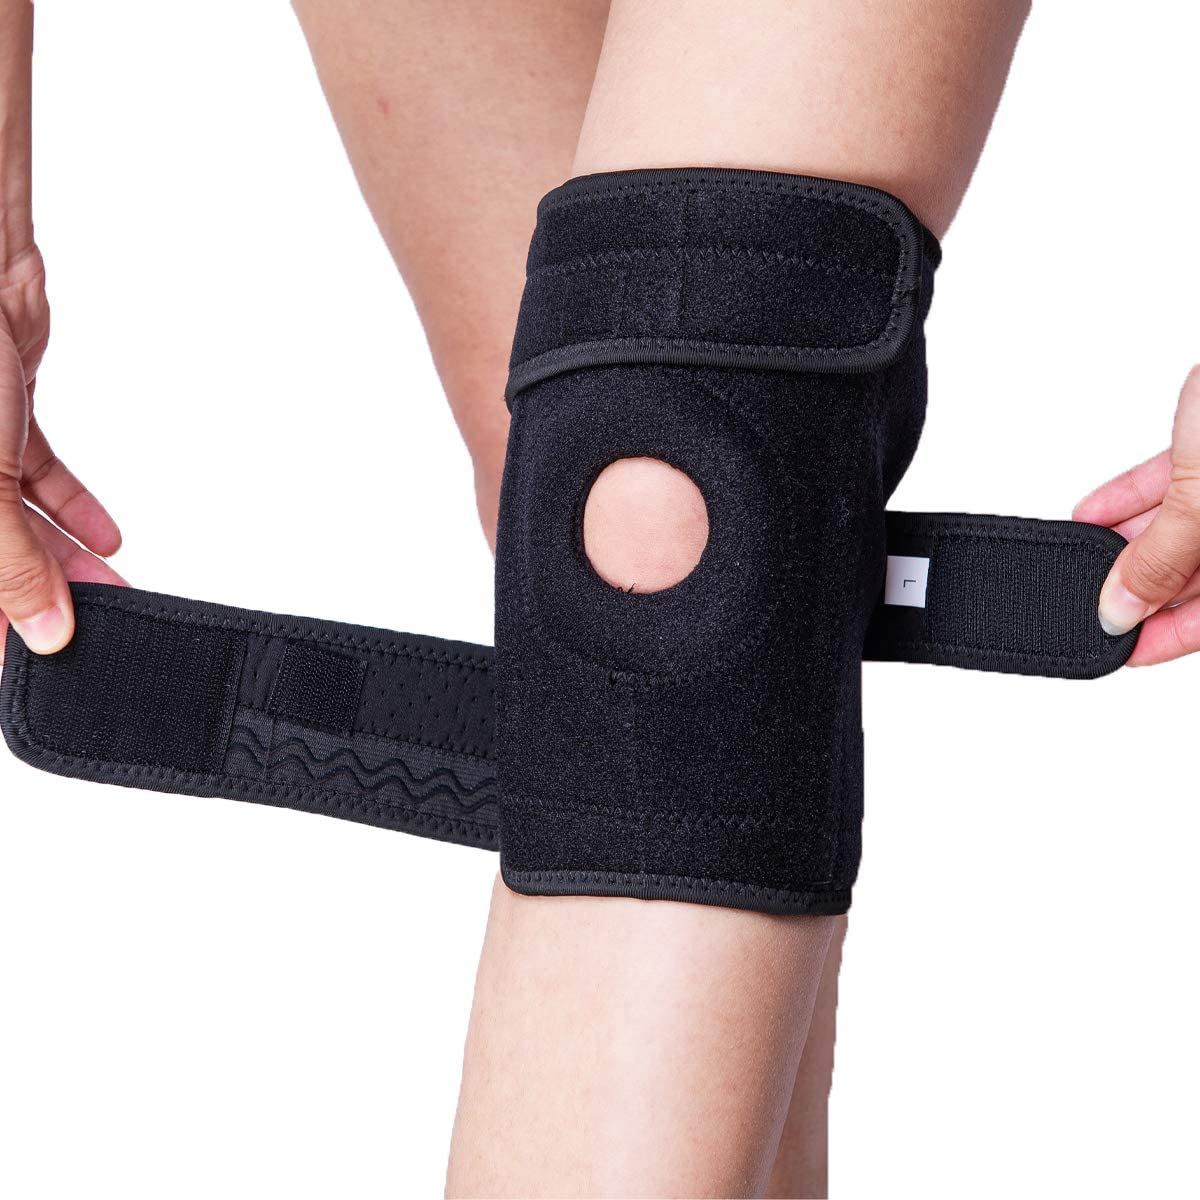 Knee Max 47% OFF Time sale Brace Support for Men and Patellar Women Adjustable -